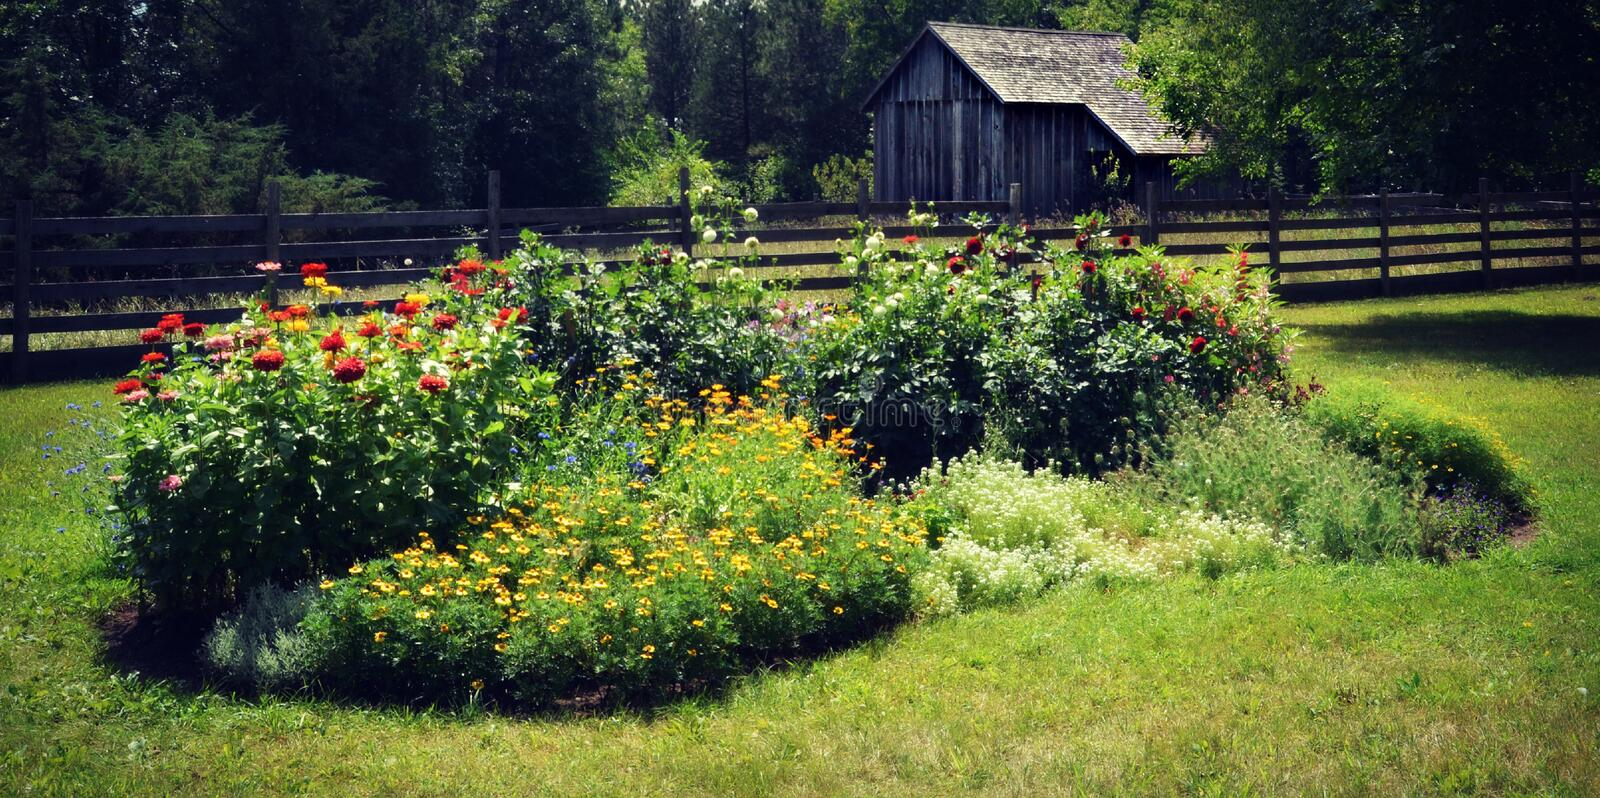 Flower Garden with Outbuilding. A flower garden with an outbuilding behind the fence at Old World Wisconsin in Eagle, WI royalty free stock photography